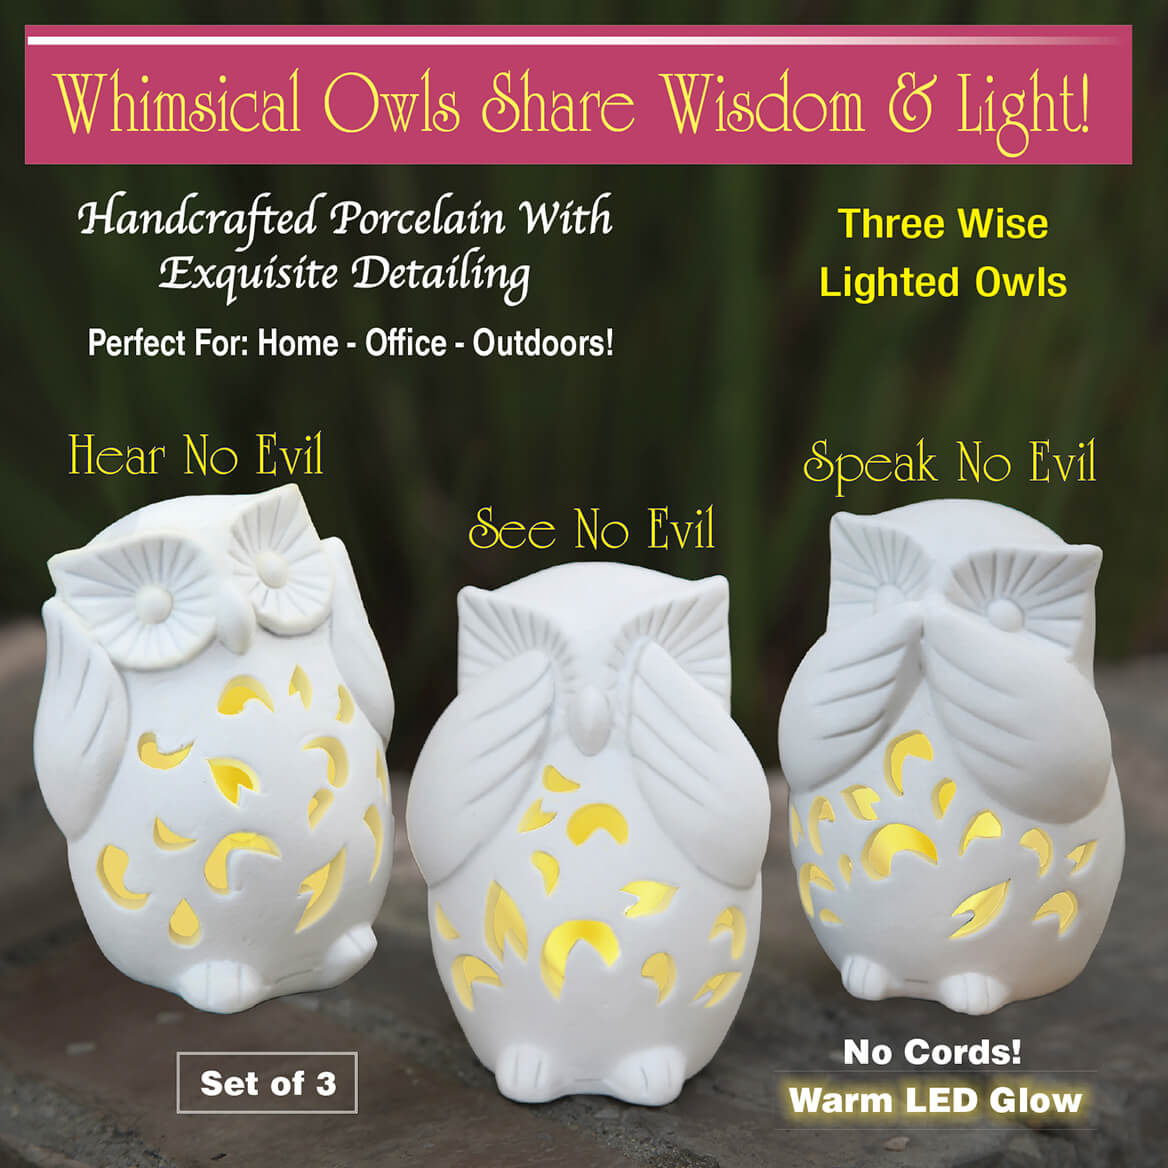 Three Wise Lighted Owls-369876